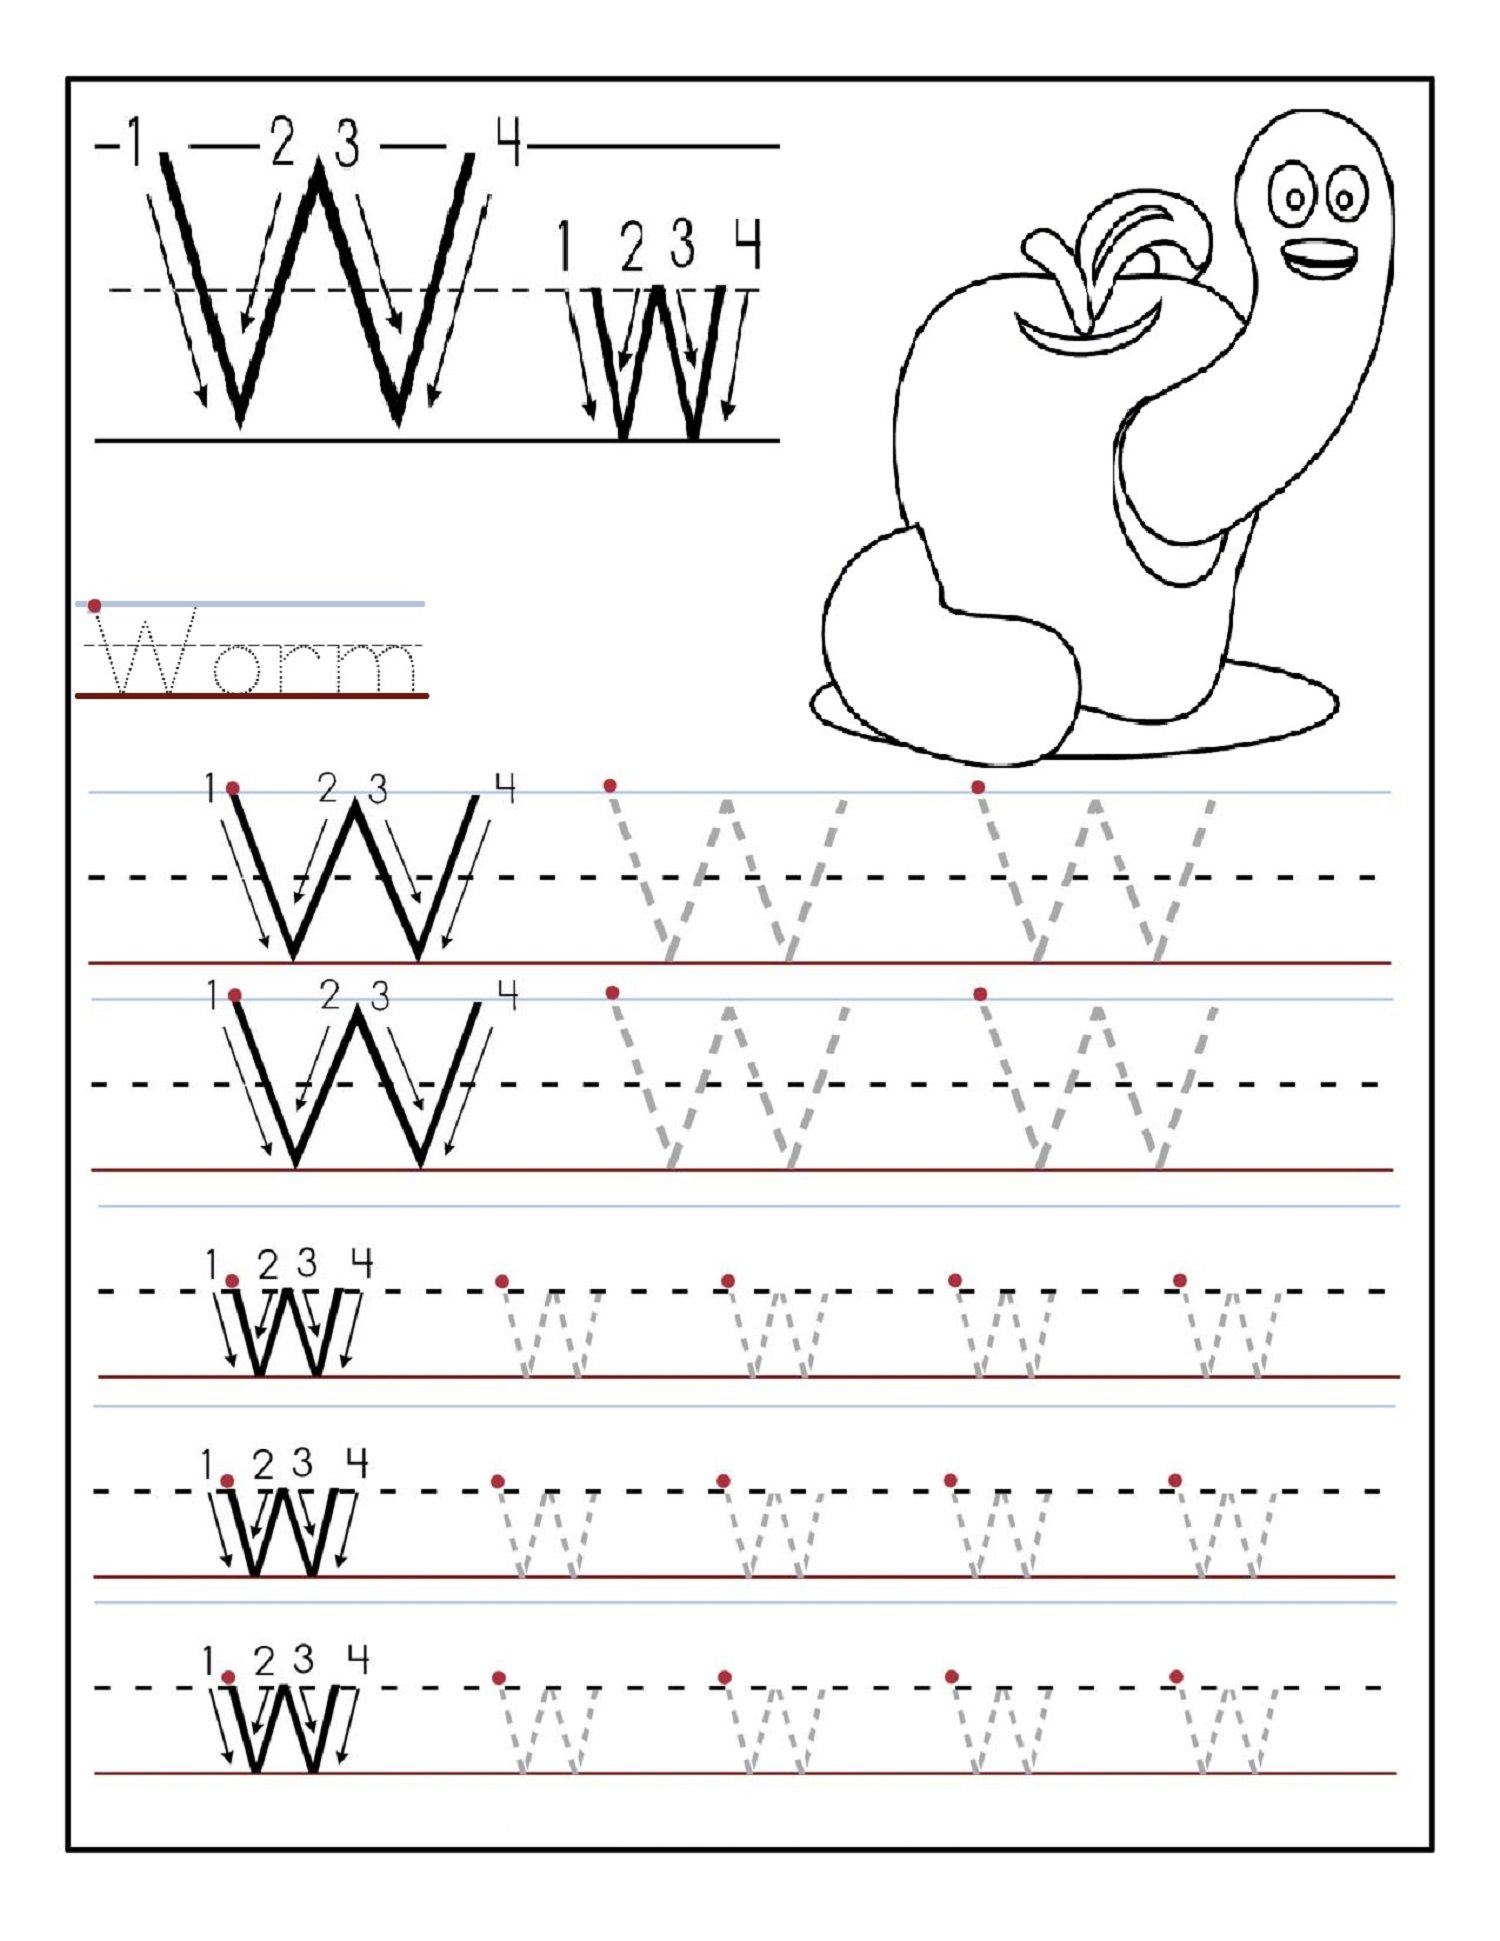 Letter Tracing Sheets For Pre School Kids